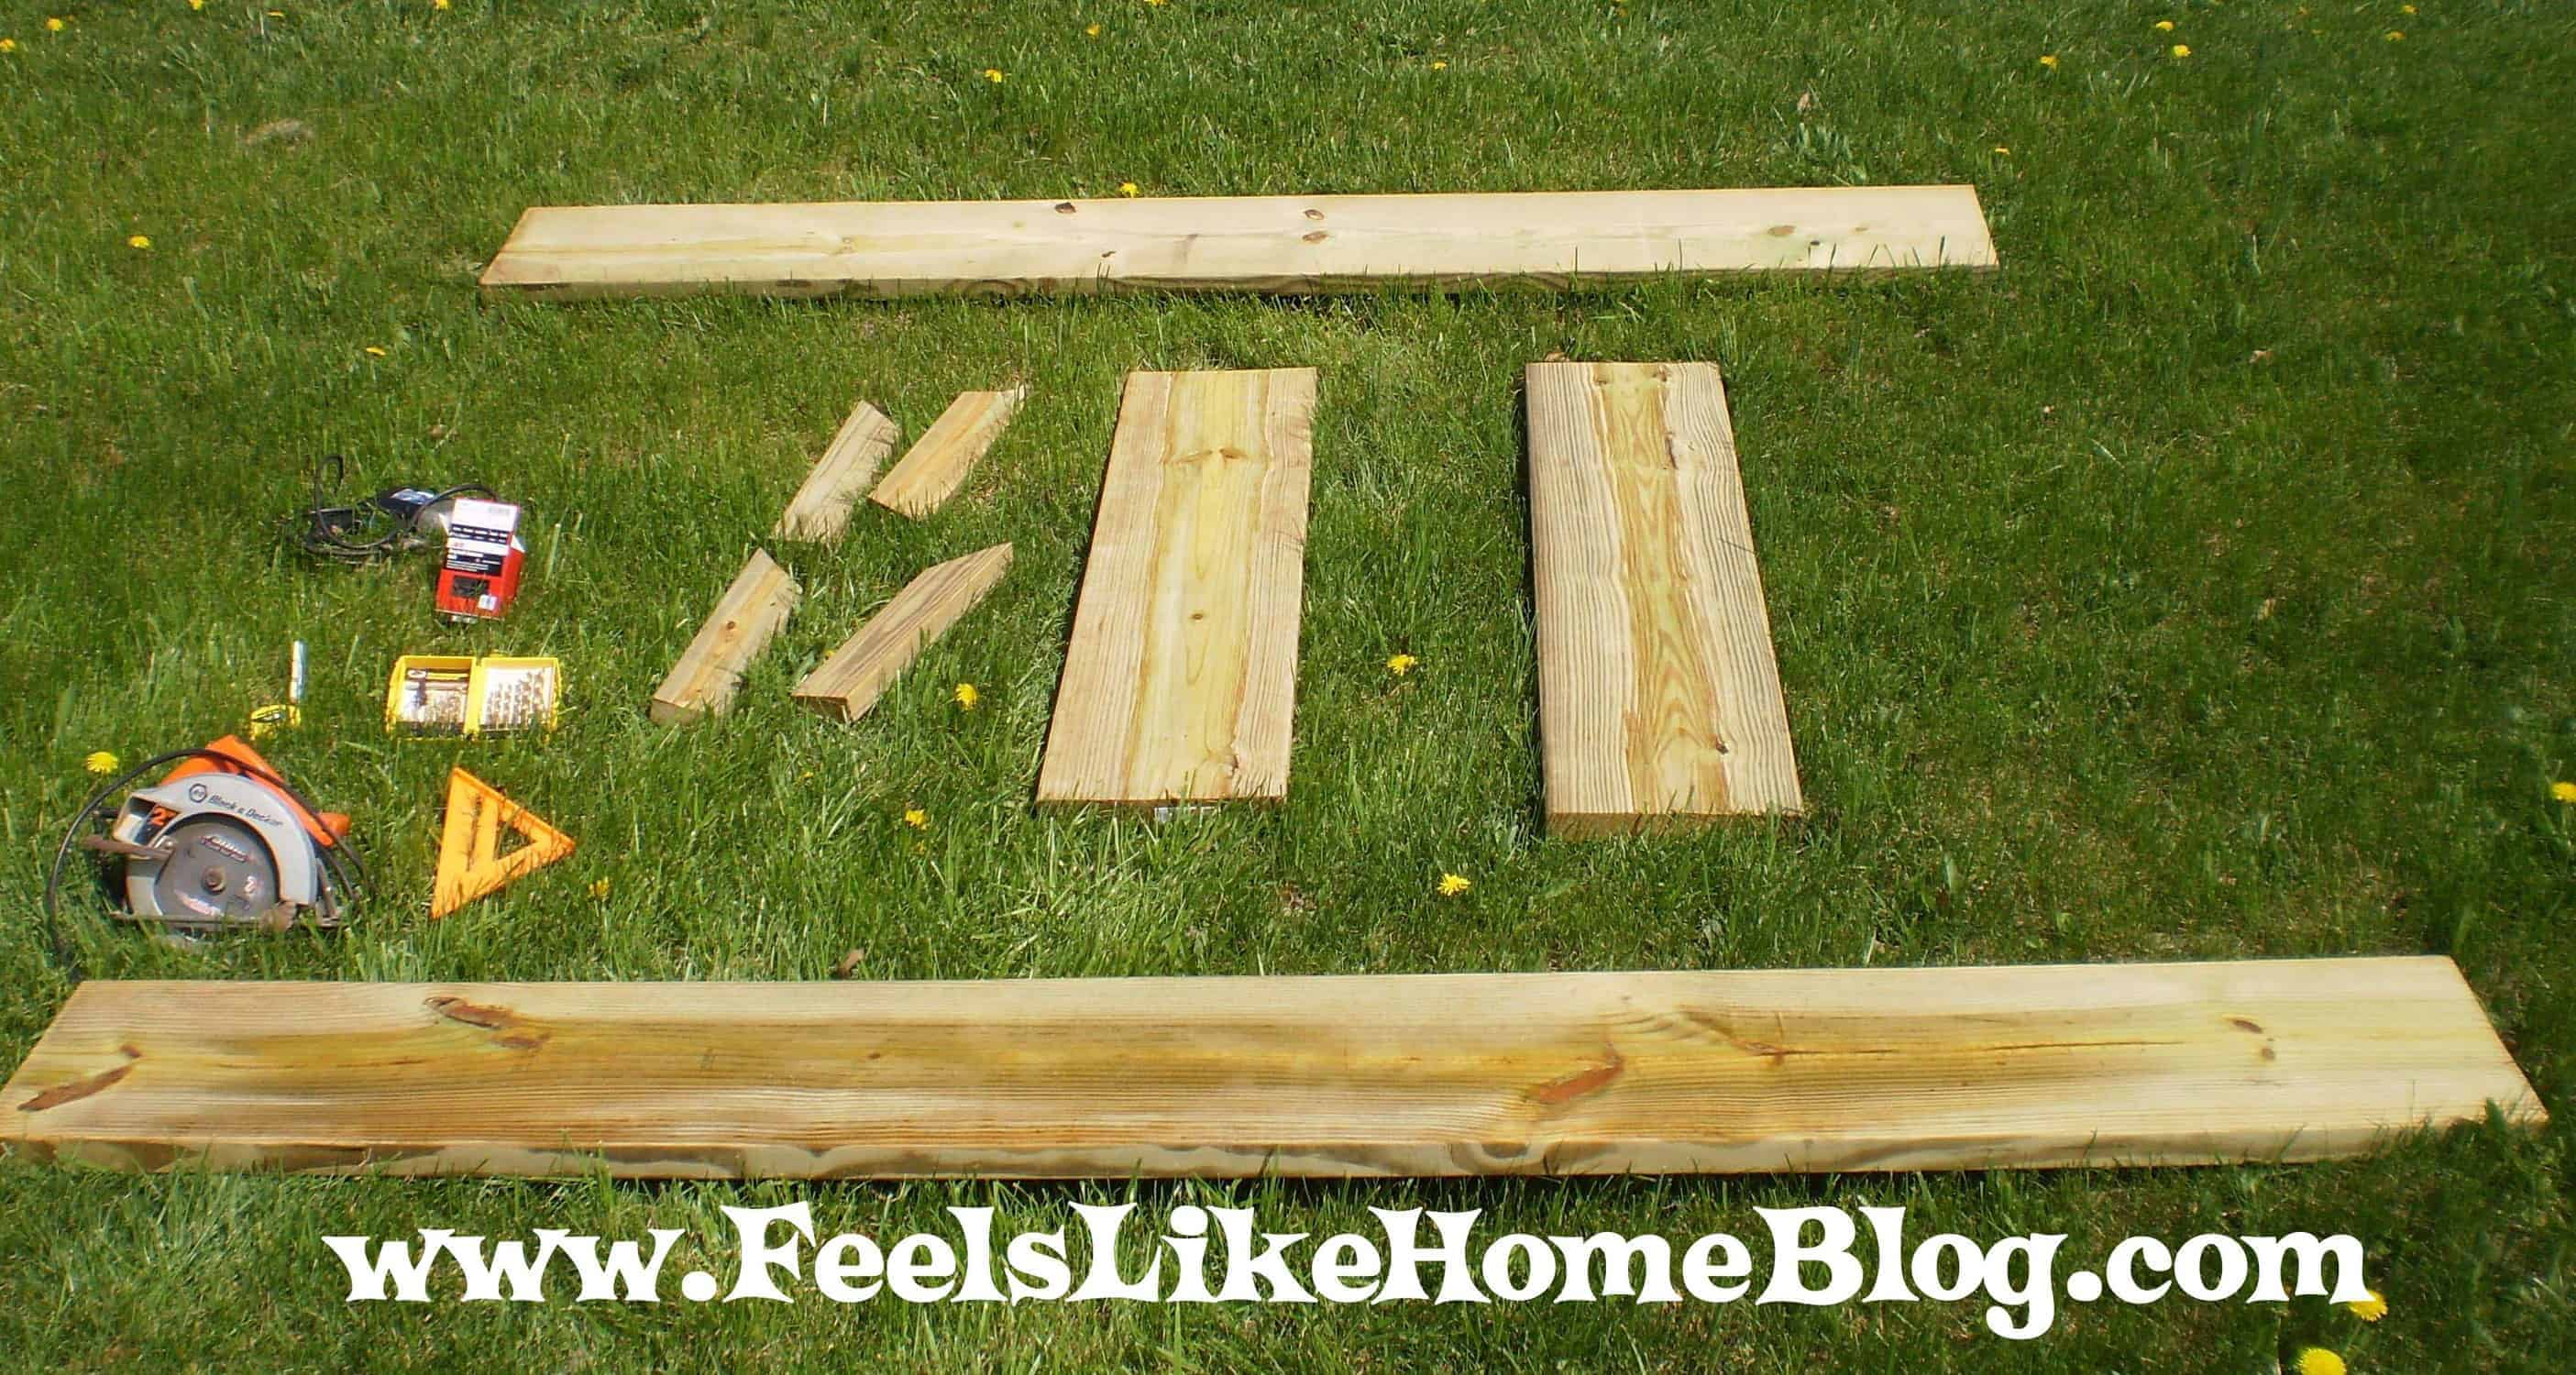 How To Build Elevated Garden Beds Home Design and Decor